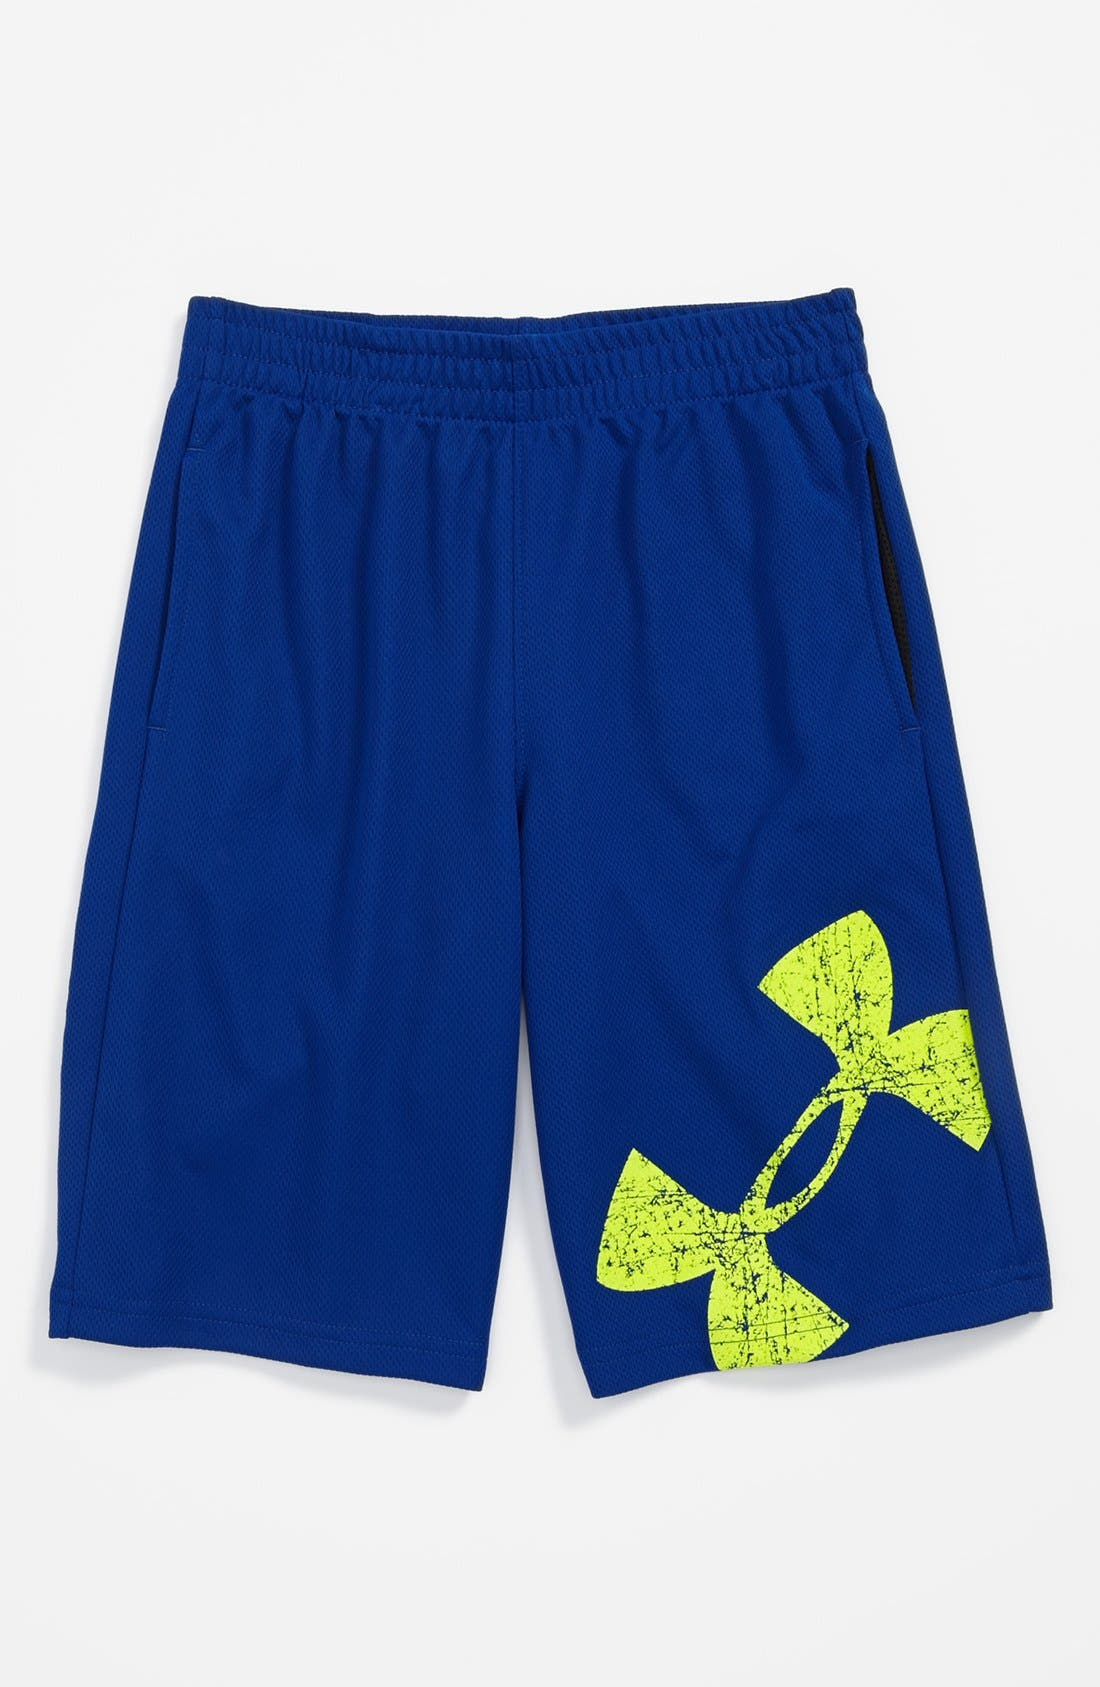 Alternate Image 1 Selected - Under Armour 'Power Up' HeatGear® Shorts (Little Boys)